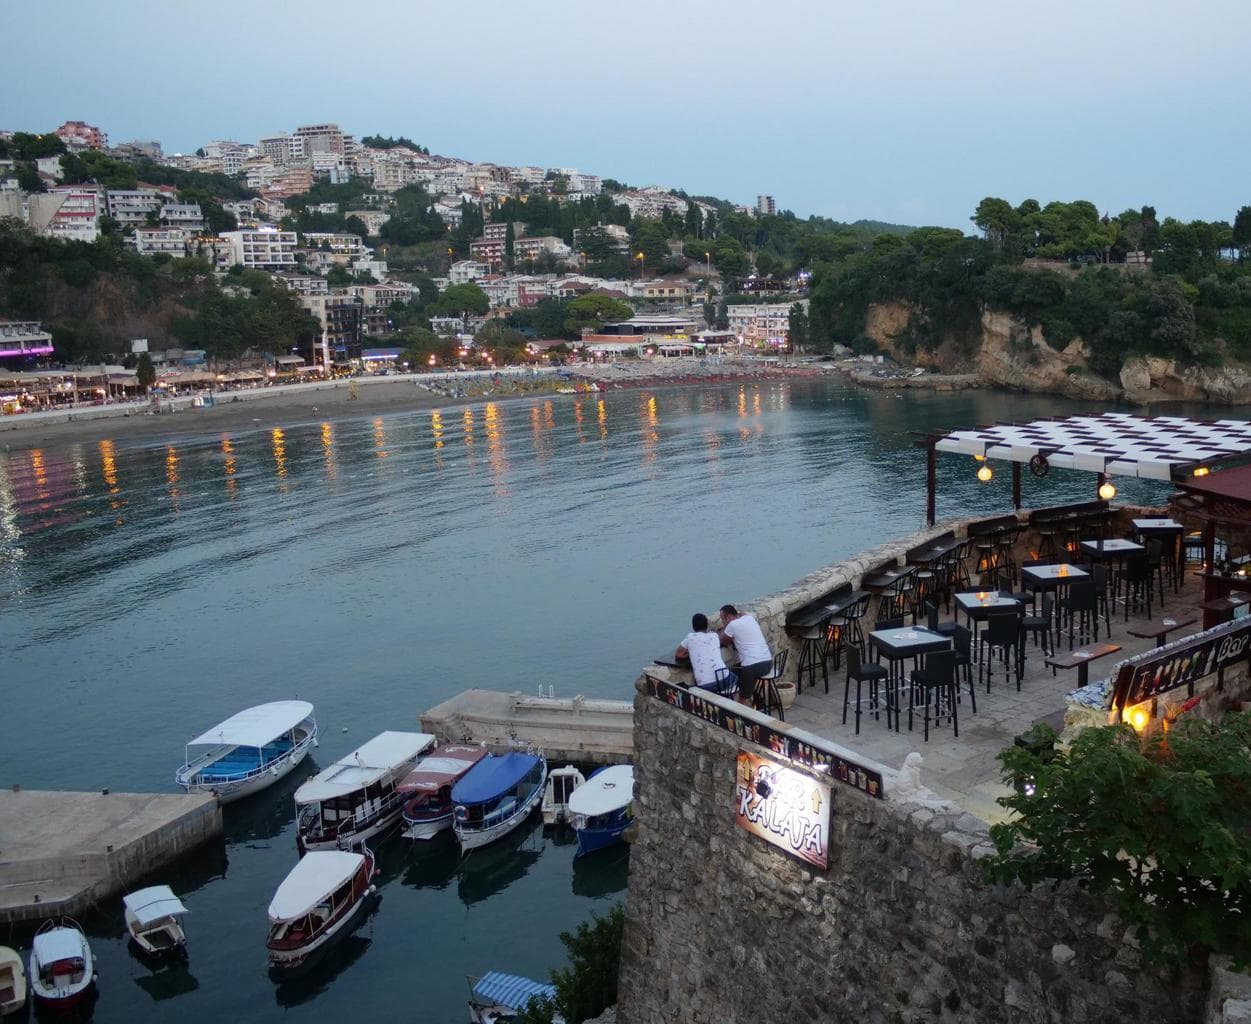 Beach in Ulcinj